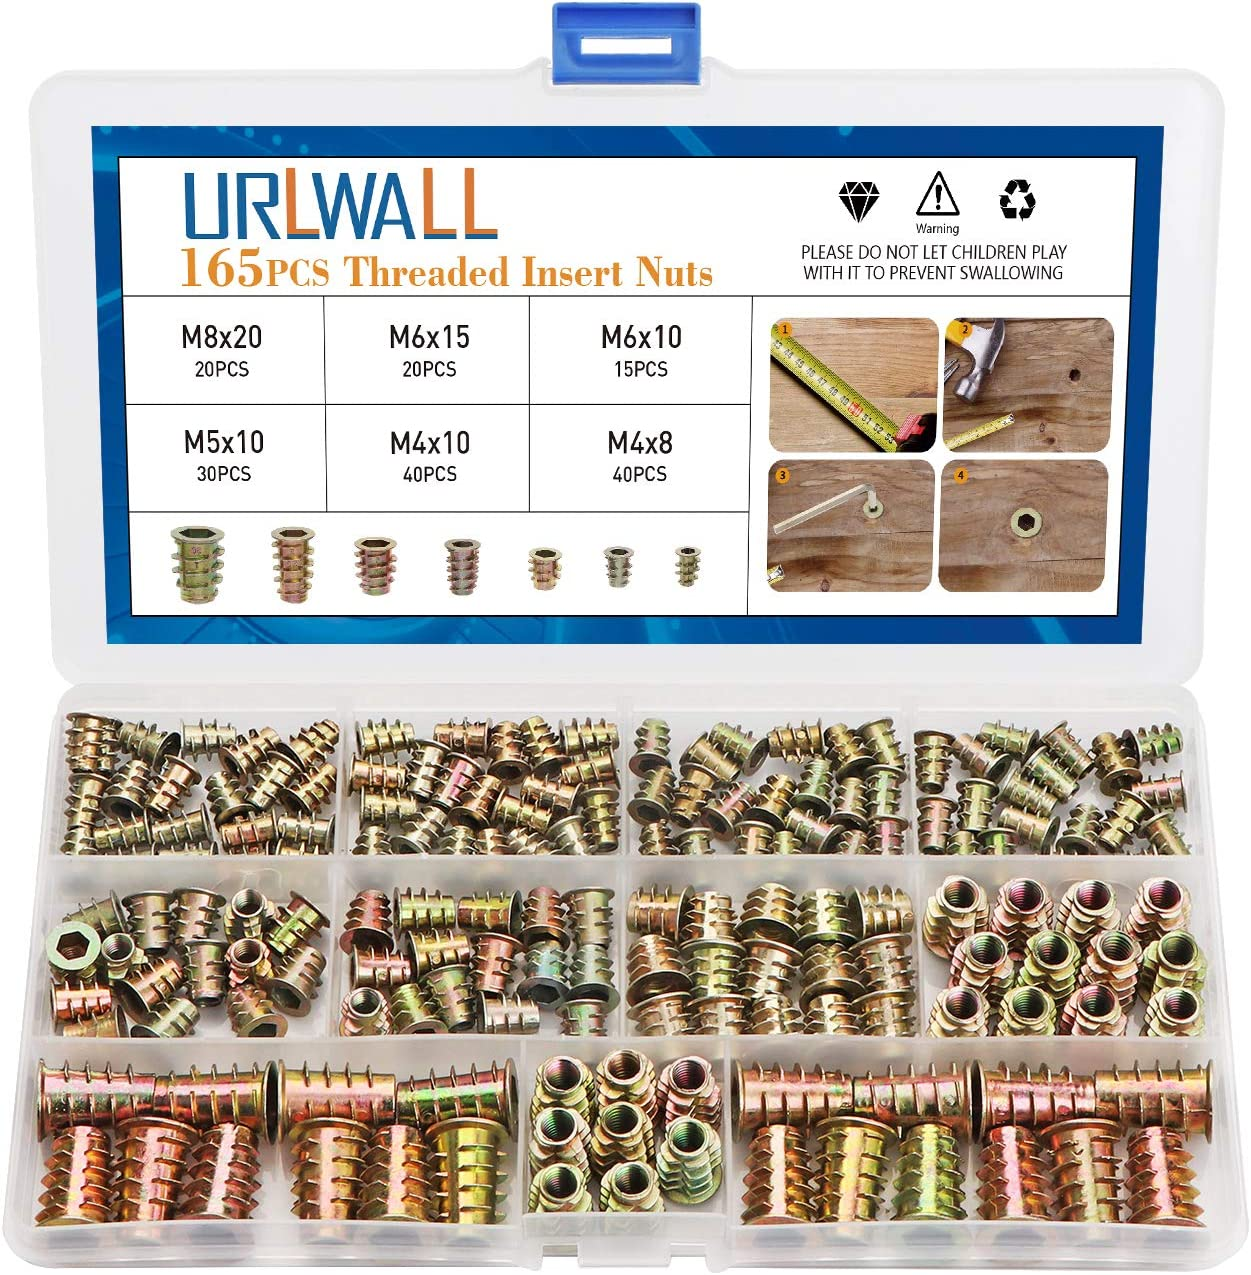 URLWALL 165PCS Threaded Inserts Nuts, Wood Insert Assortment Tool Kit, M4/M5/M6/M8 Furniture Screw in Nut Wood Inserts Metric Bolt Fastener Hex Socket Drive for Wood Furniture Assortment